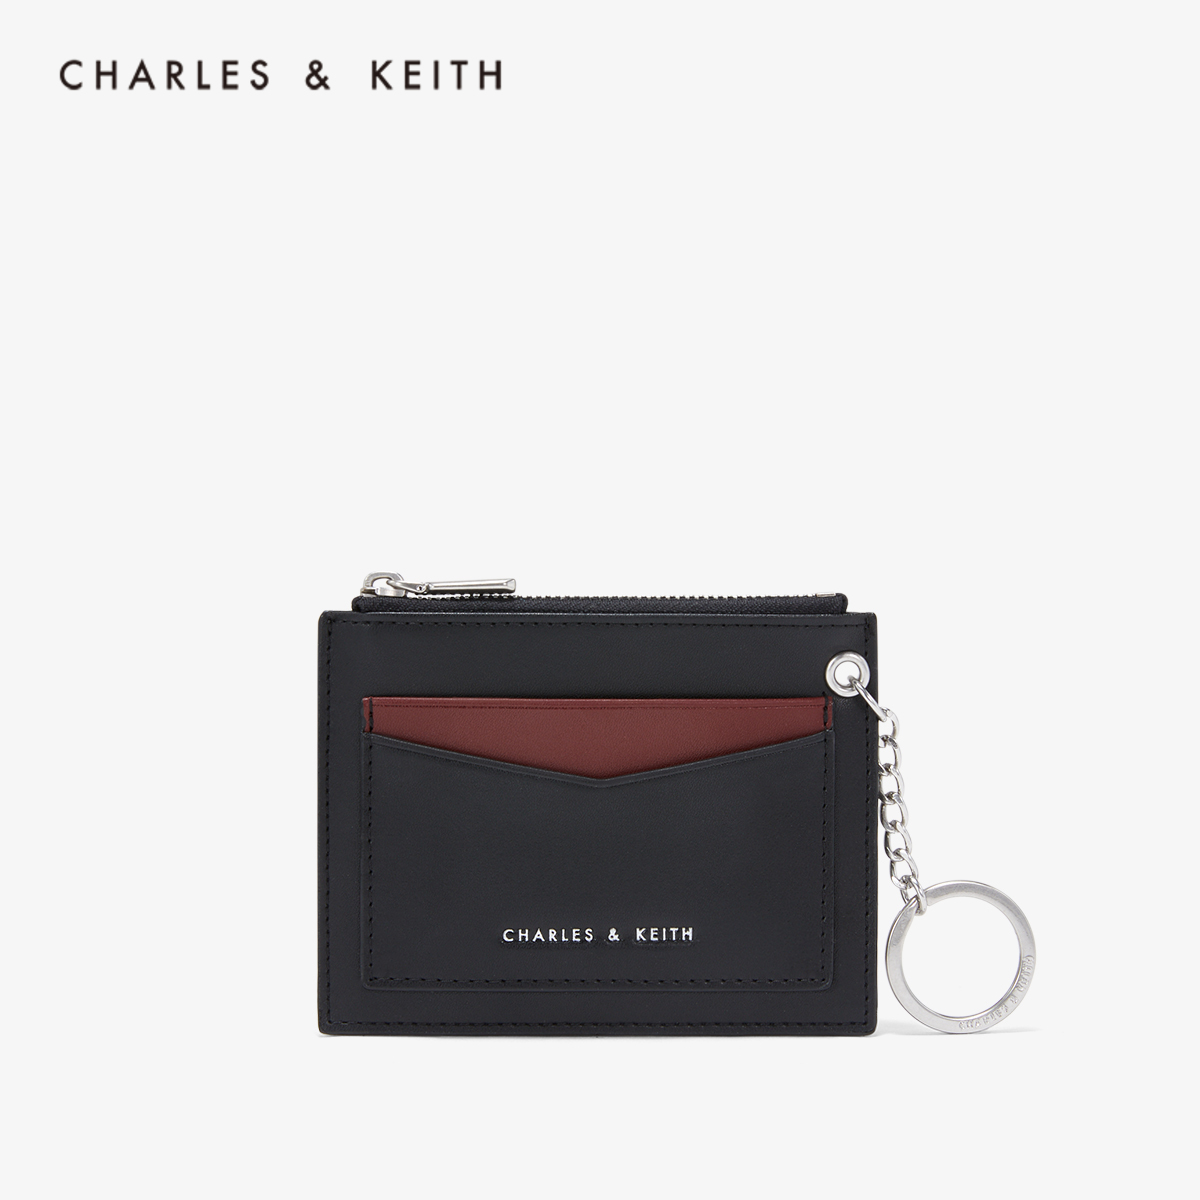 CHARLES & KEITH Zero Wallet CK6-50680793-1 Decorative Lady's Mini Wallet Card